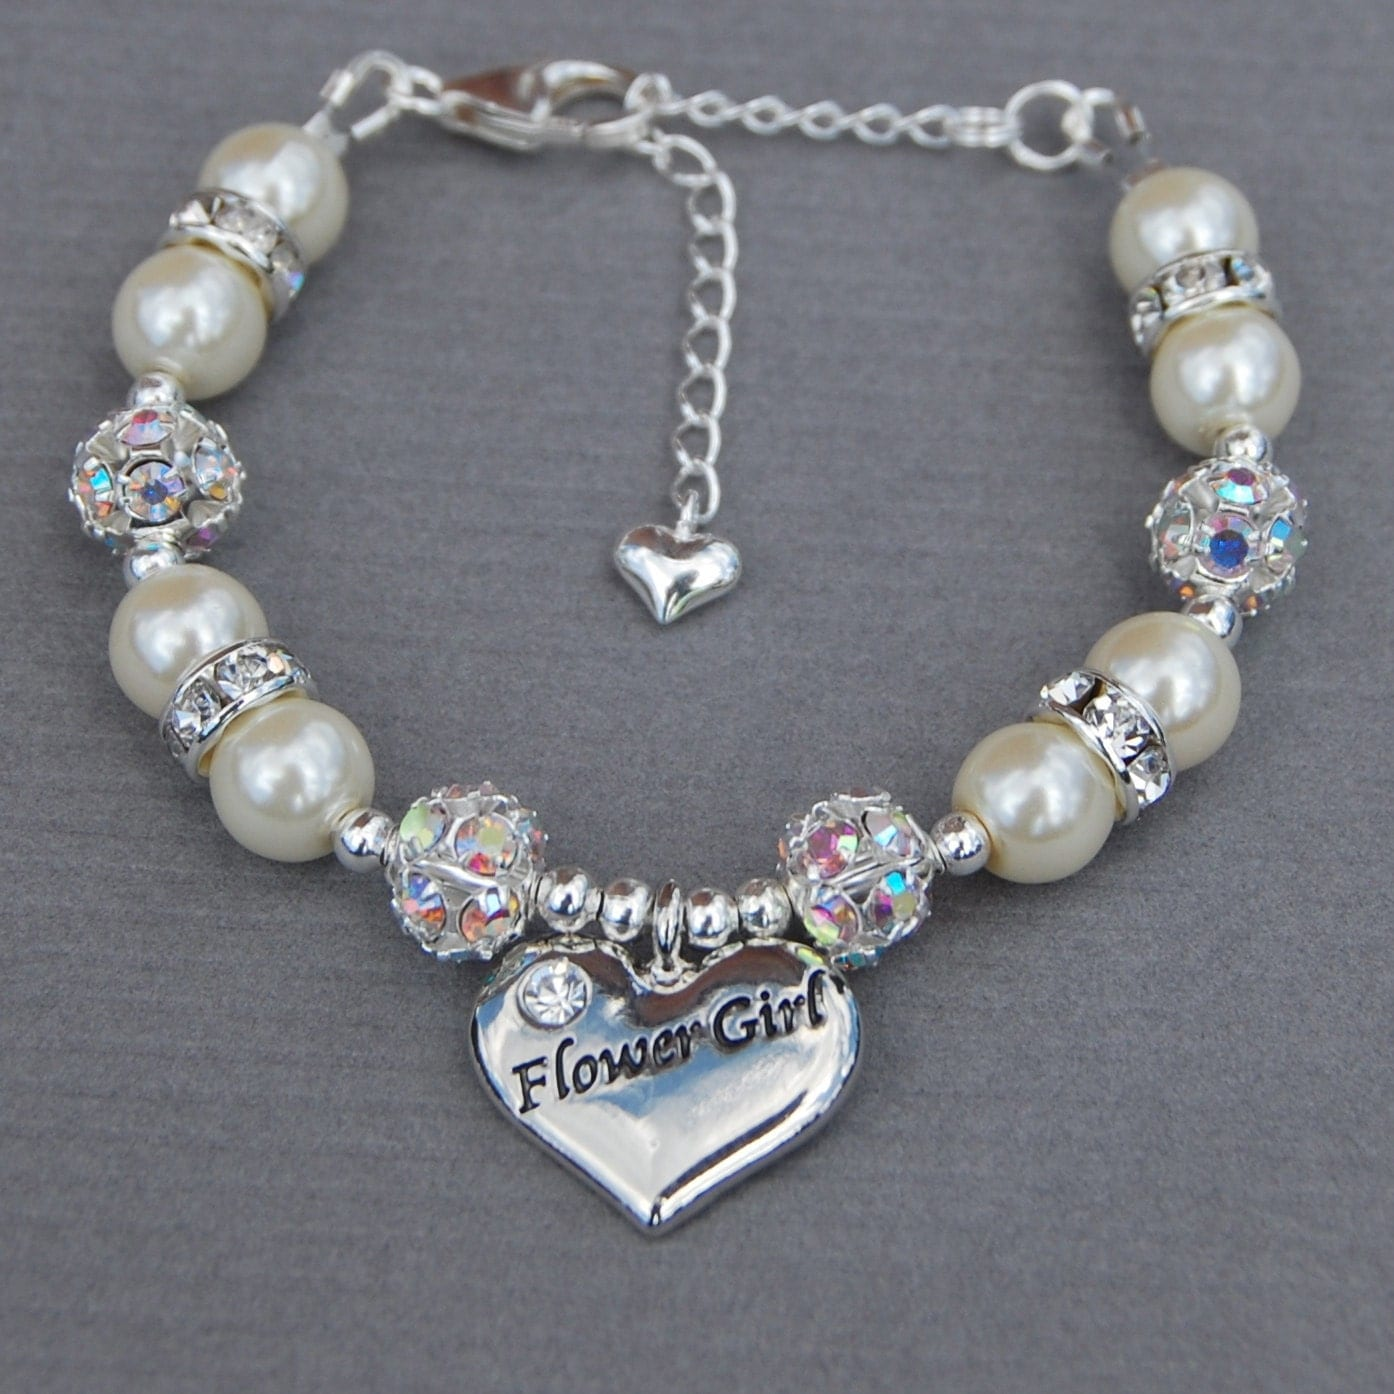 Find and save ideas about Girls jewelry on Pinterest. | See more ideas about Wire wrapped stones, Flower girl jewelry and Little girl jewelry.